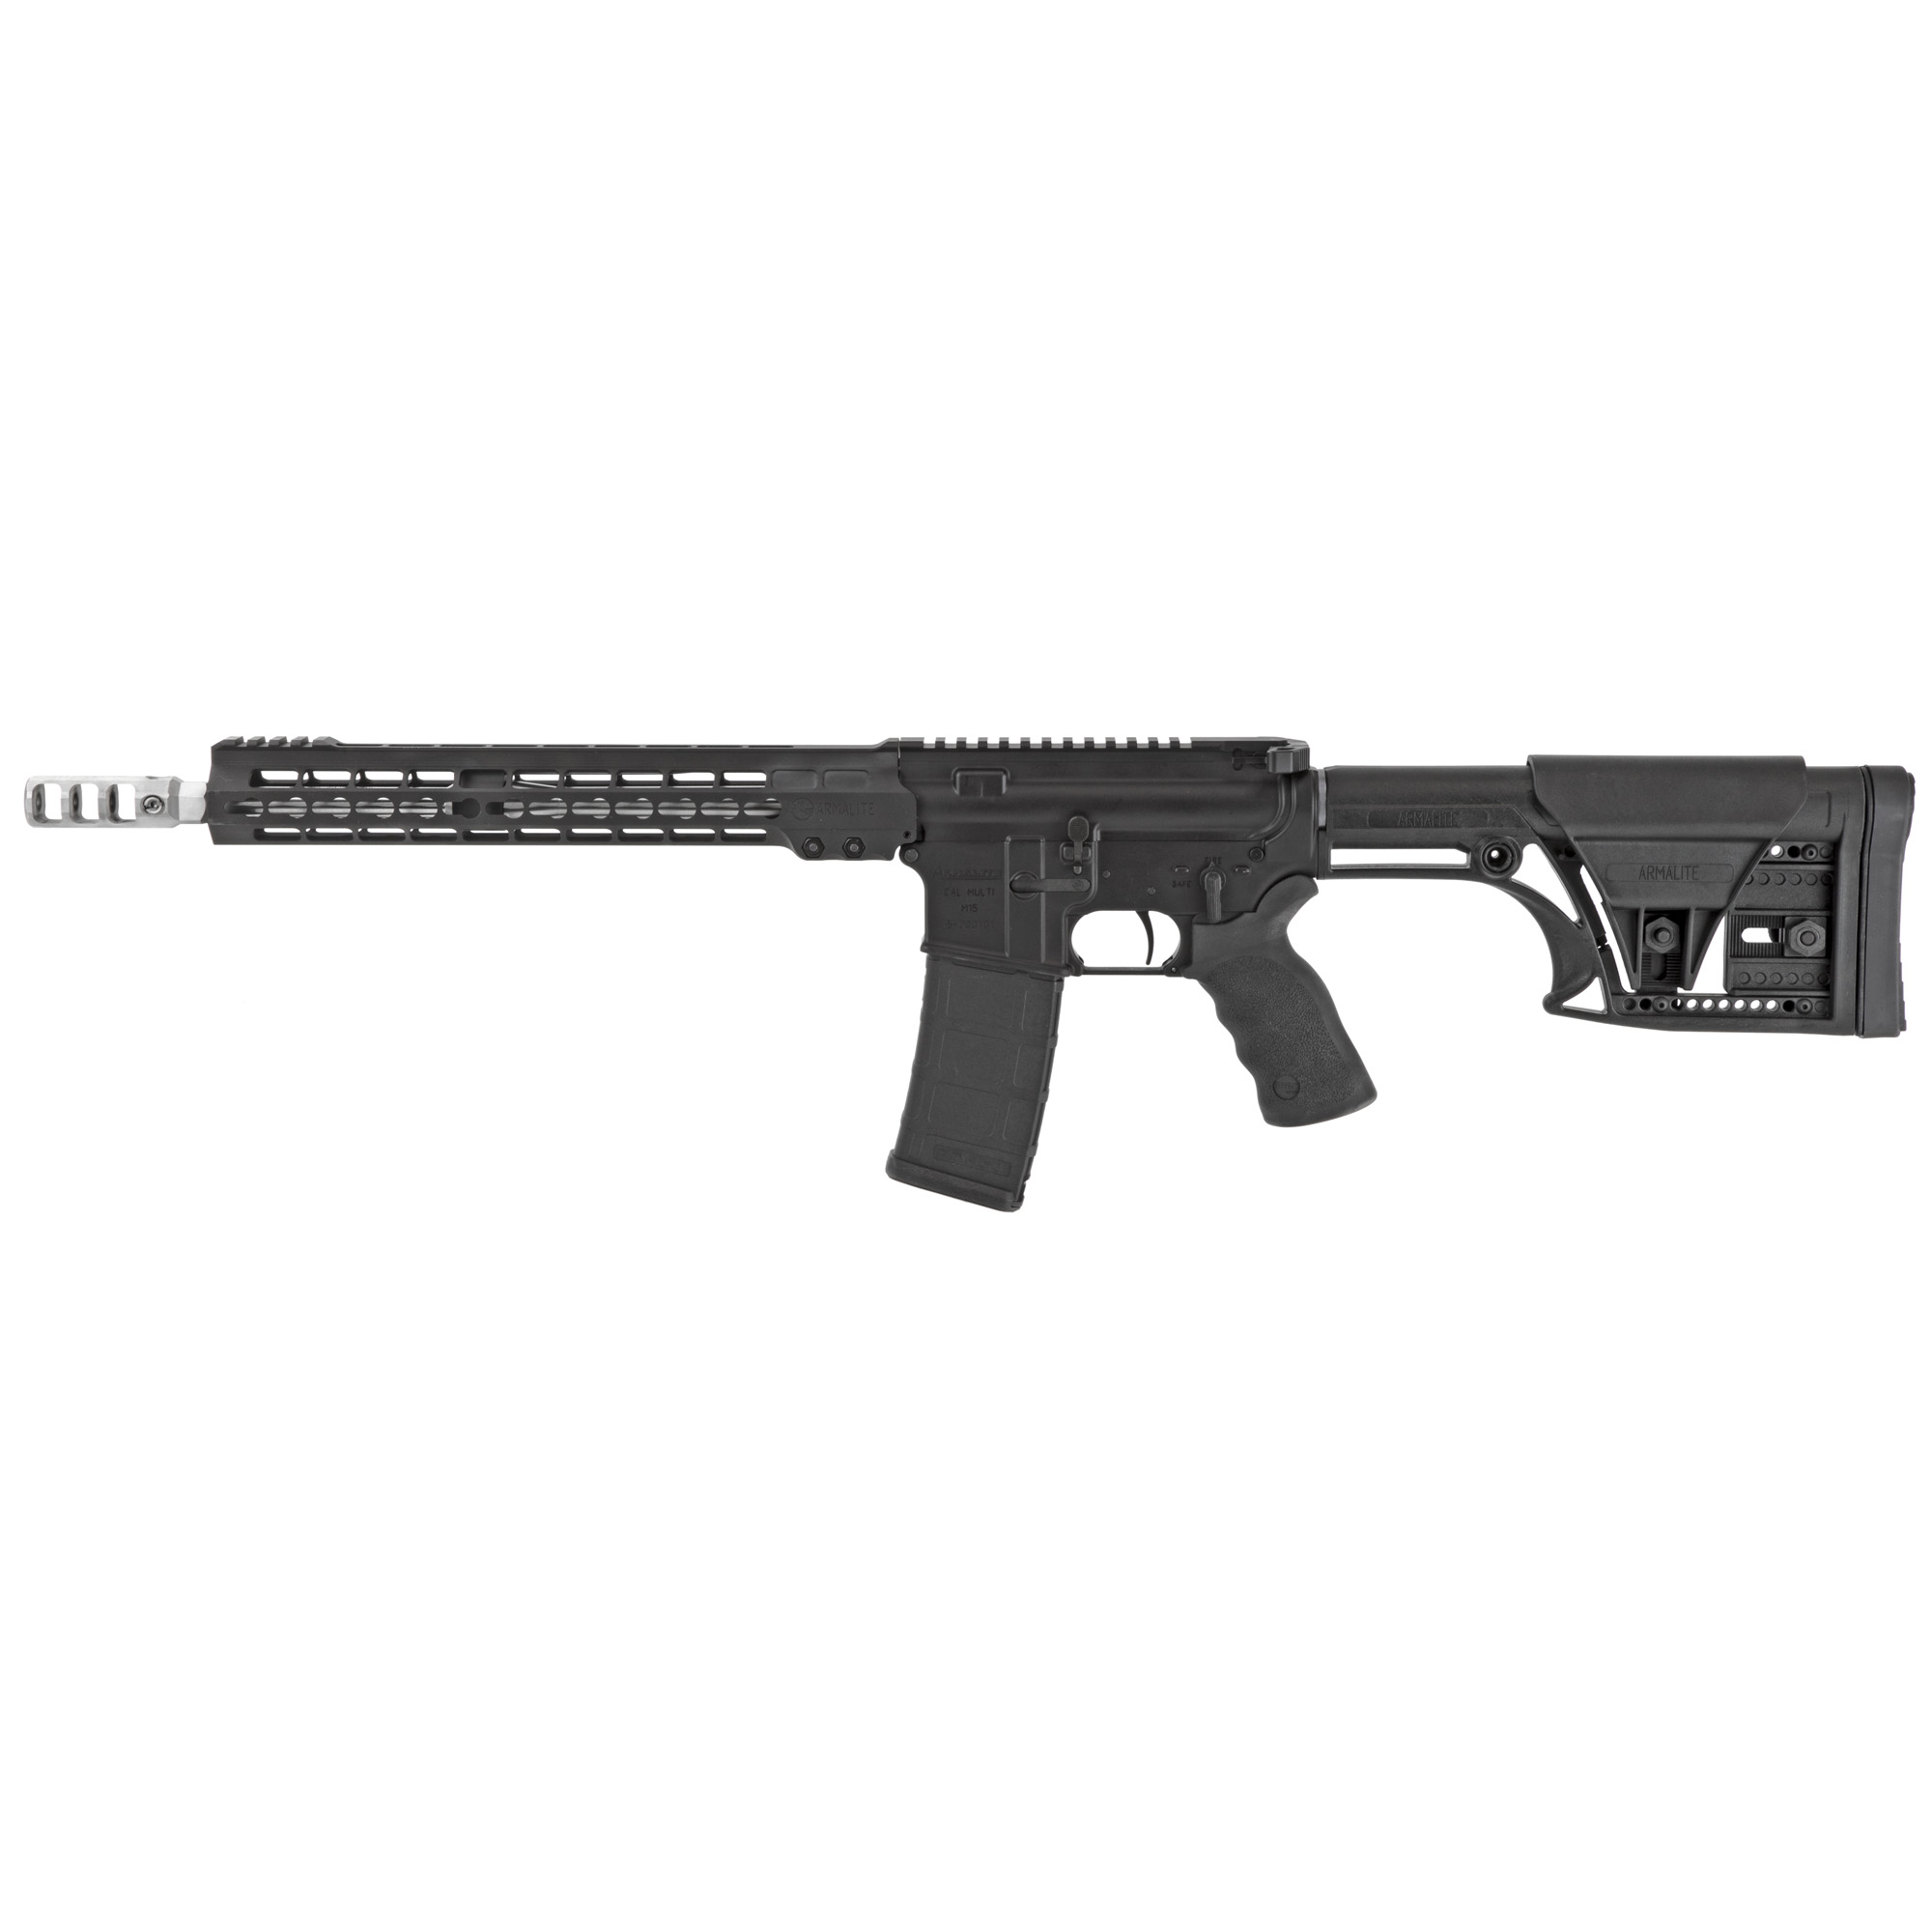 """Purpose built for 3-Gun and practical rifle competition"""" the M153GN13 is ready to dominate"""" right out-of-the-box. A Timney 4-lb."""" single-stage trigger and Ergo wide grip come standard. The light weight MBA-1 buttstock features an adjustable cheek piece and length-of-pull."""